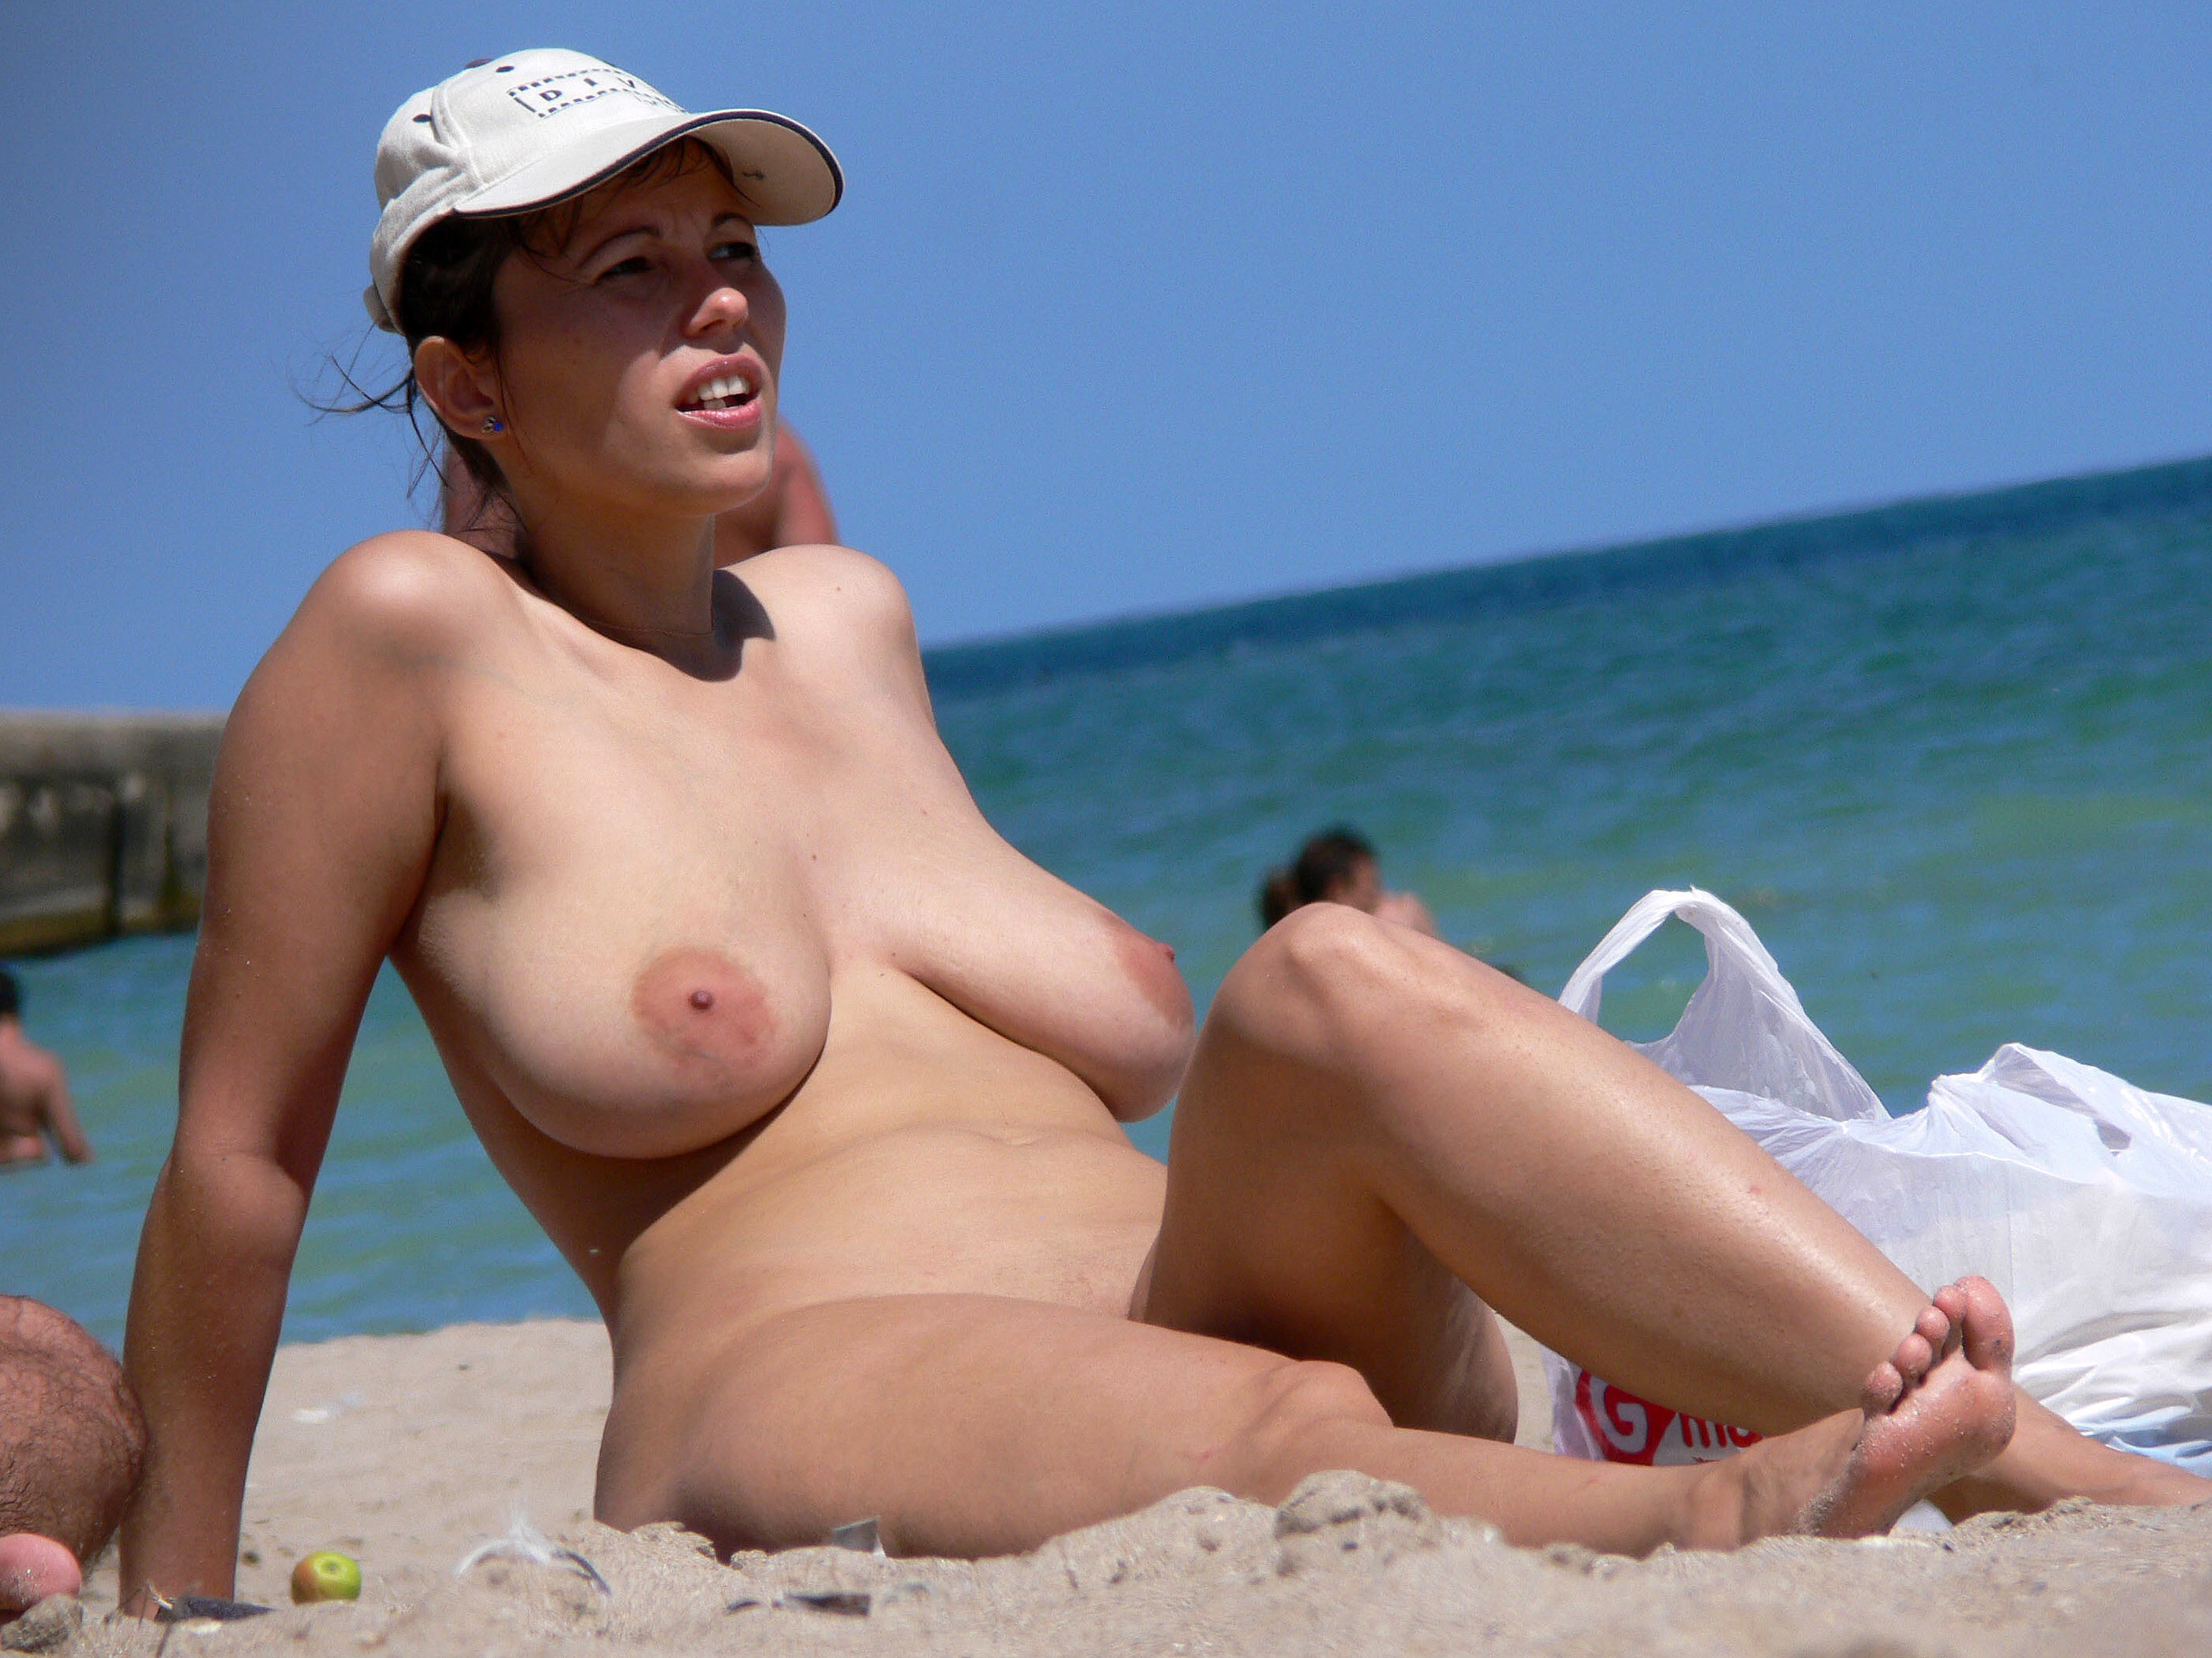 Nude beaches in miami